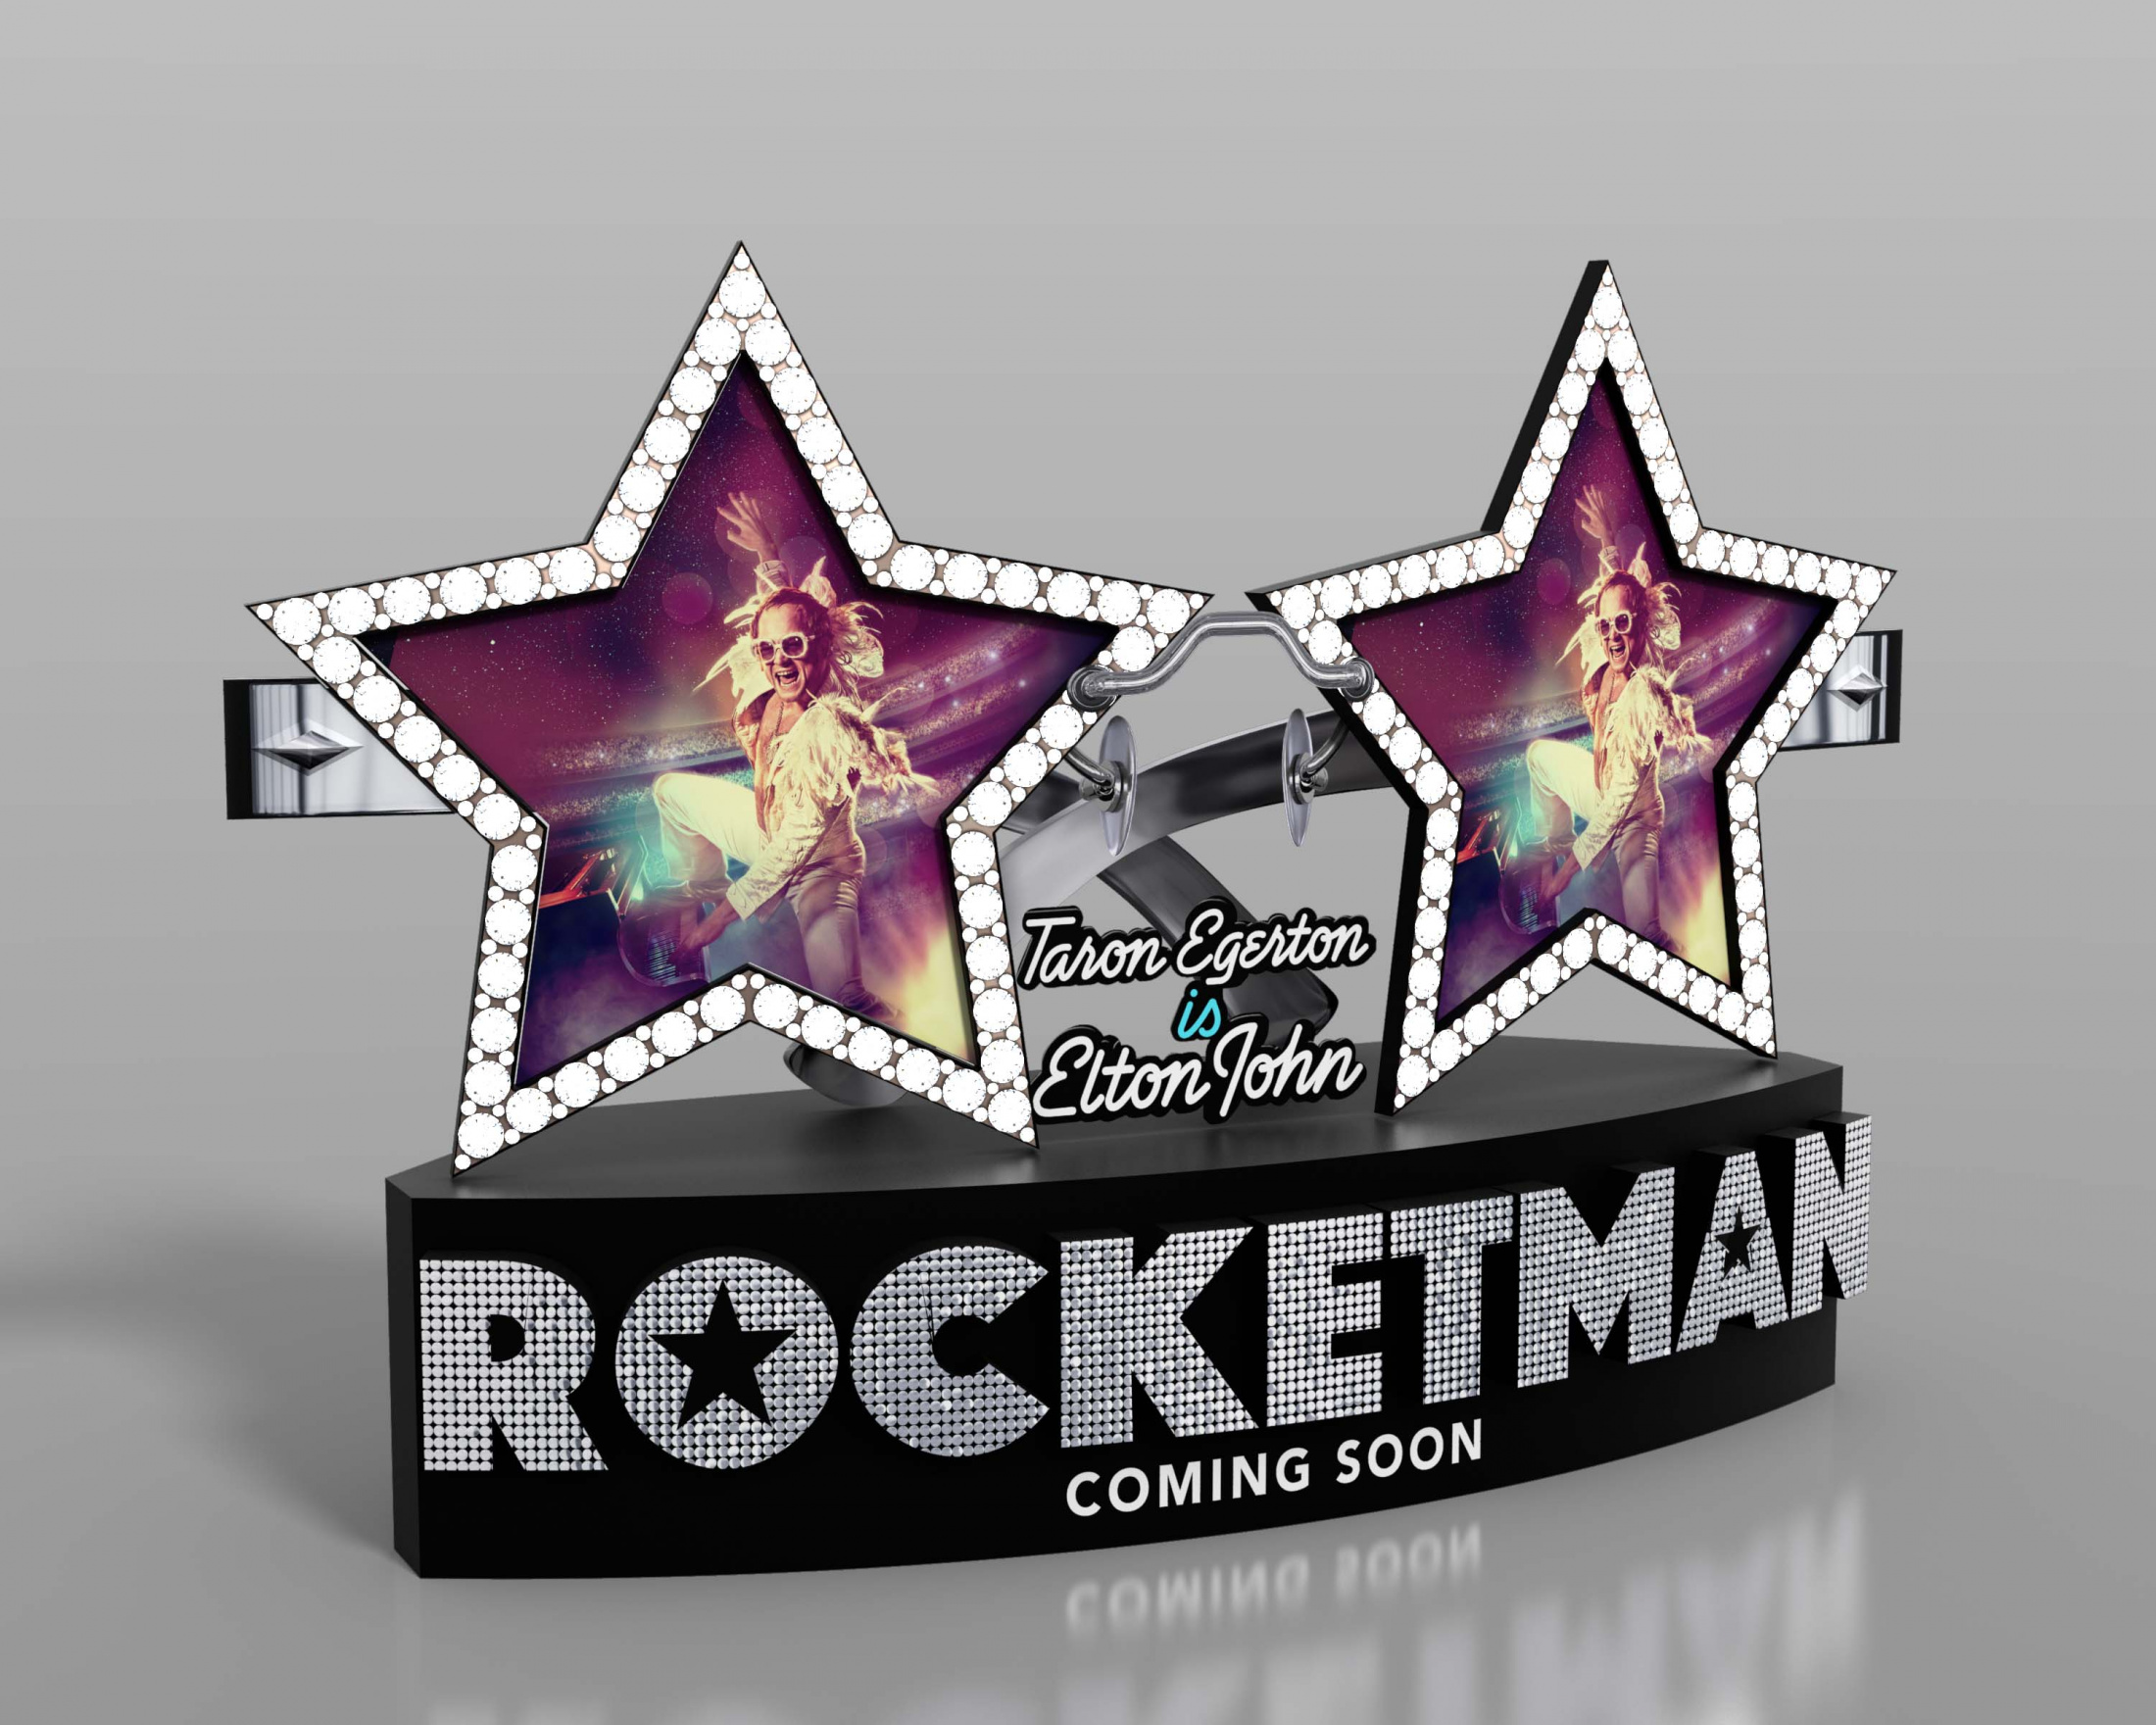 Thumbnail for Rocketman International In-Theatre Standee